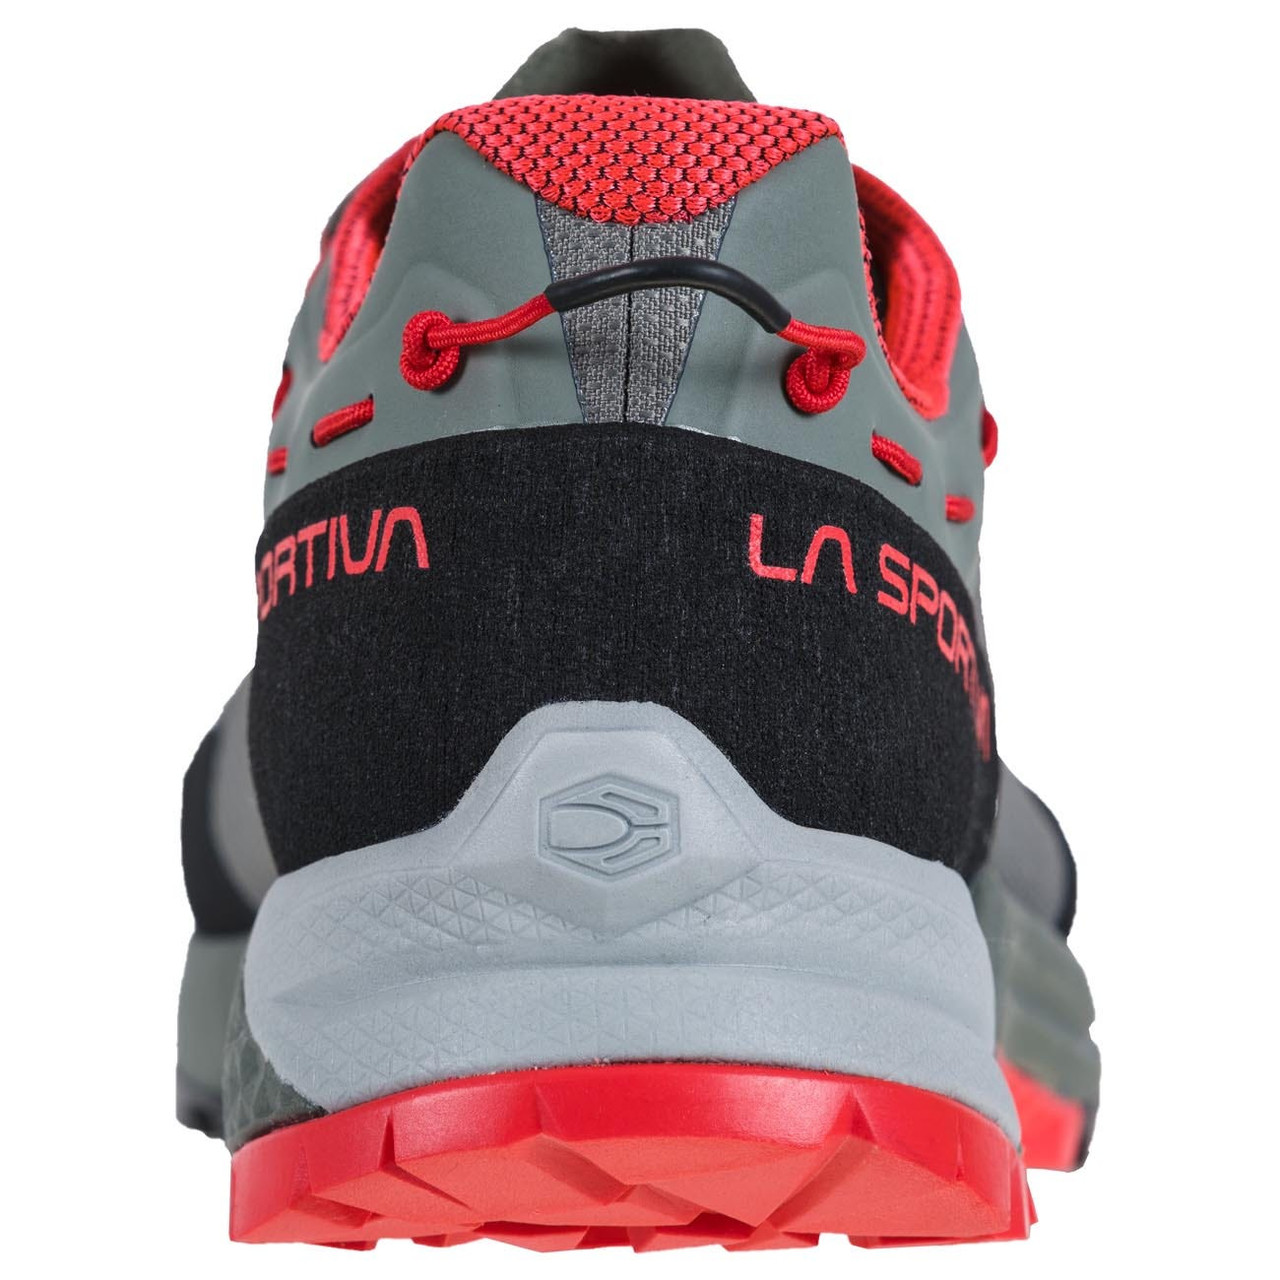 La Sportiva TX Guide - Women's Approach Shoe Back Online at Mountain Mail Order South Africa